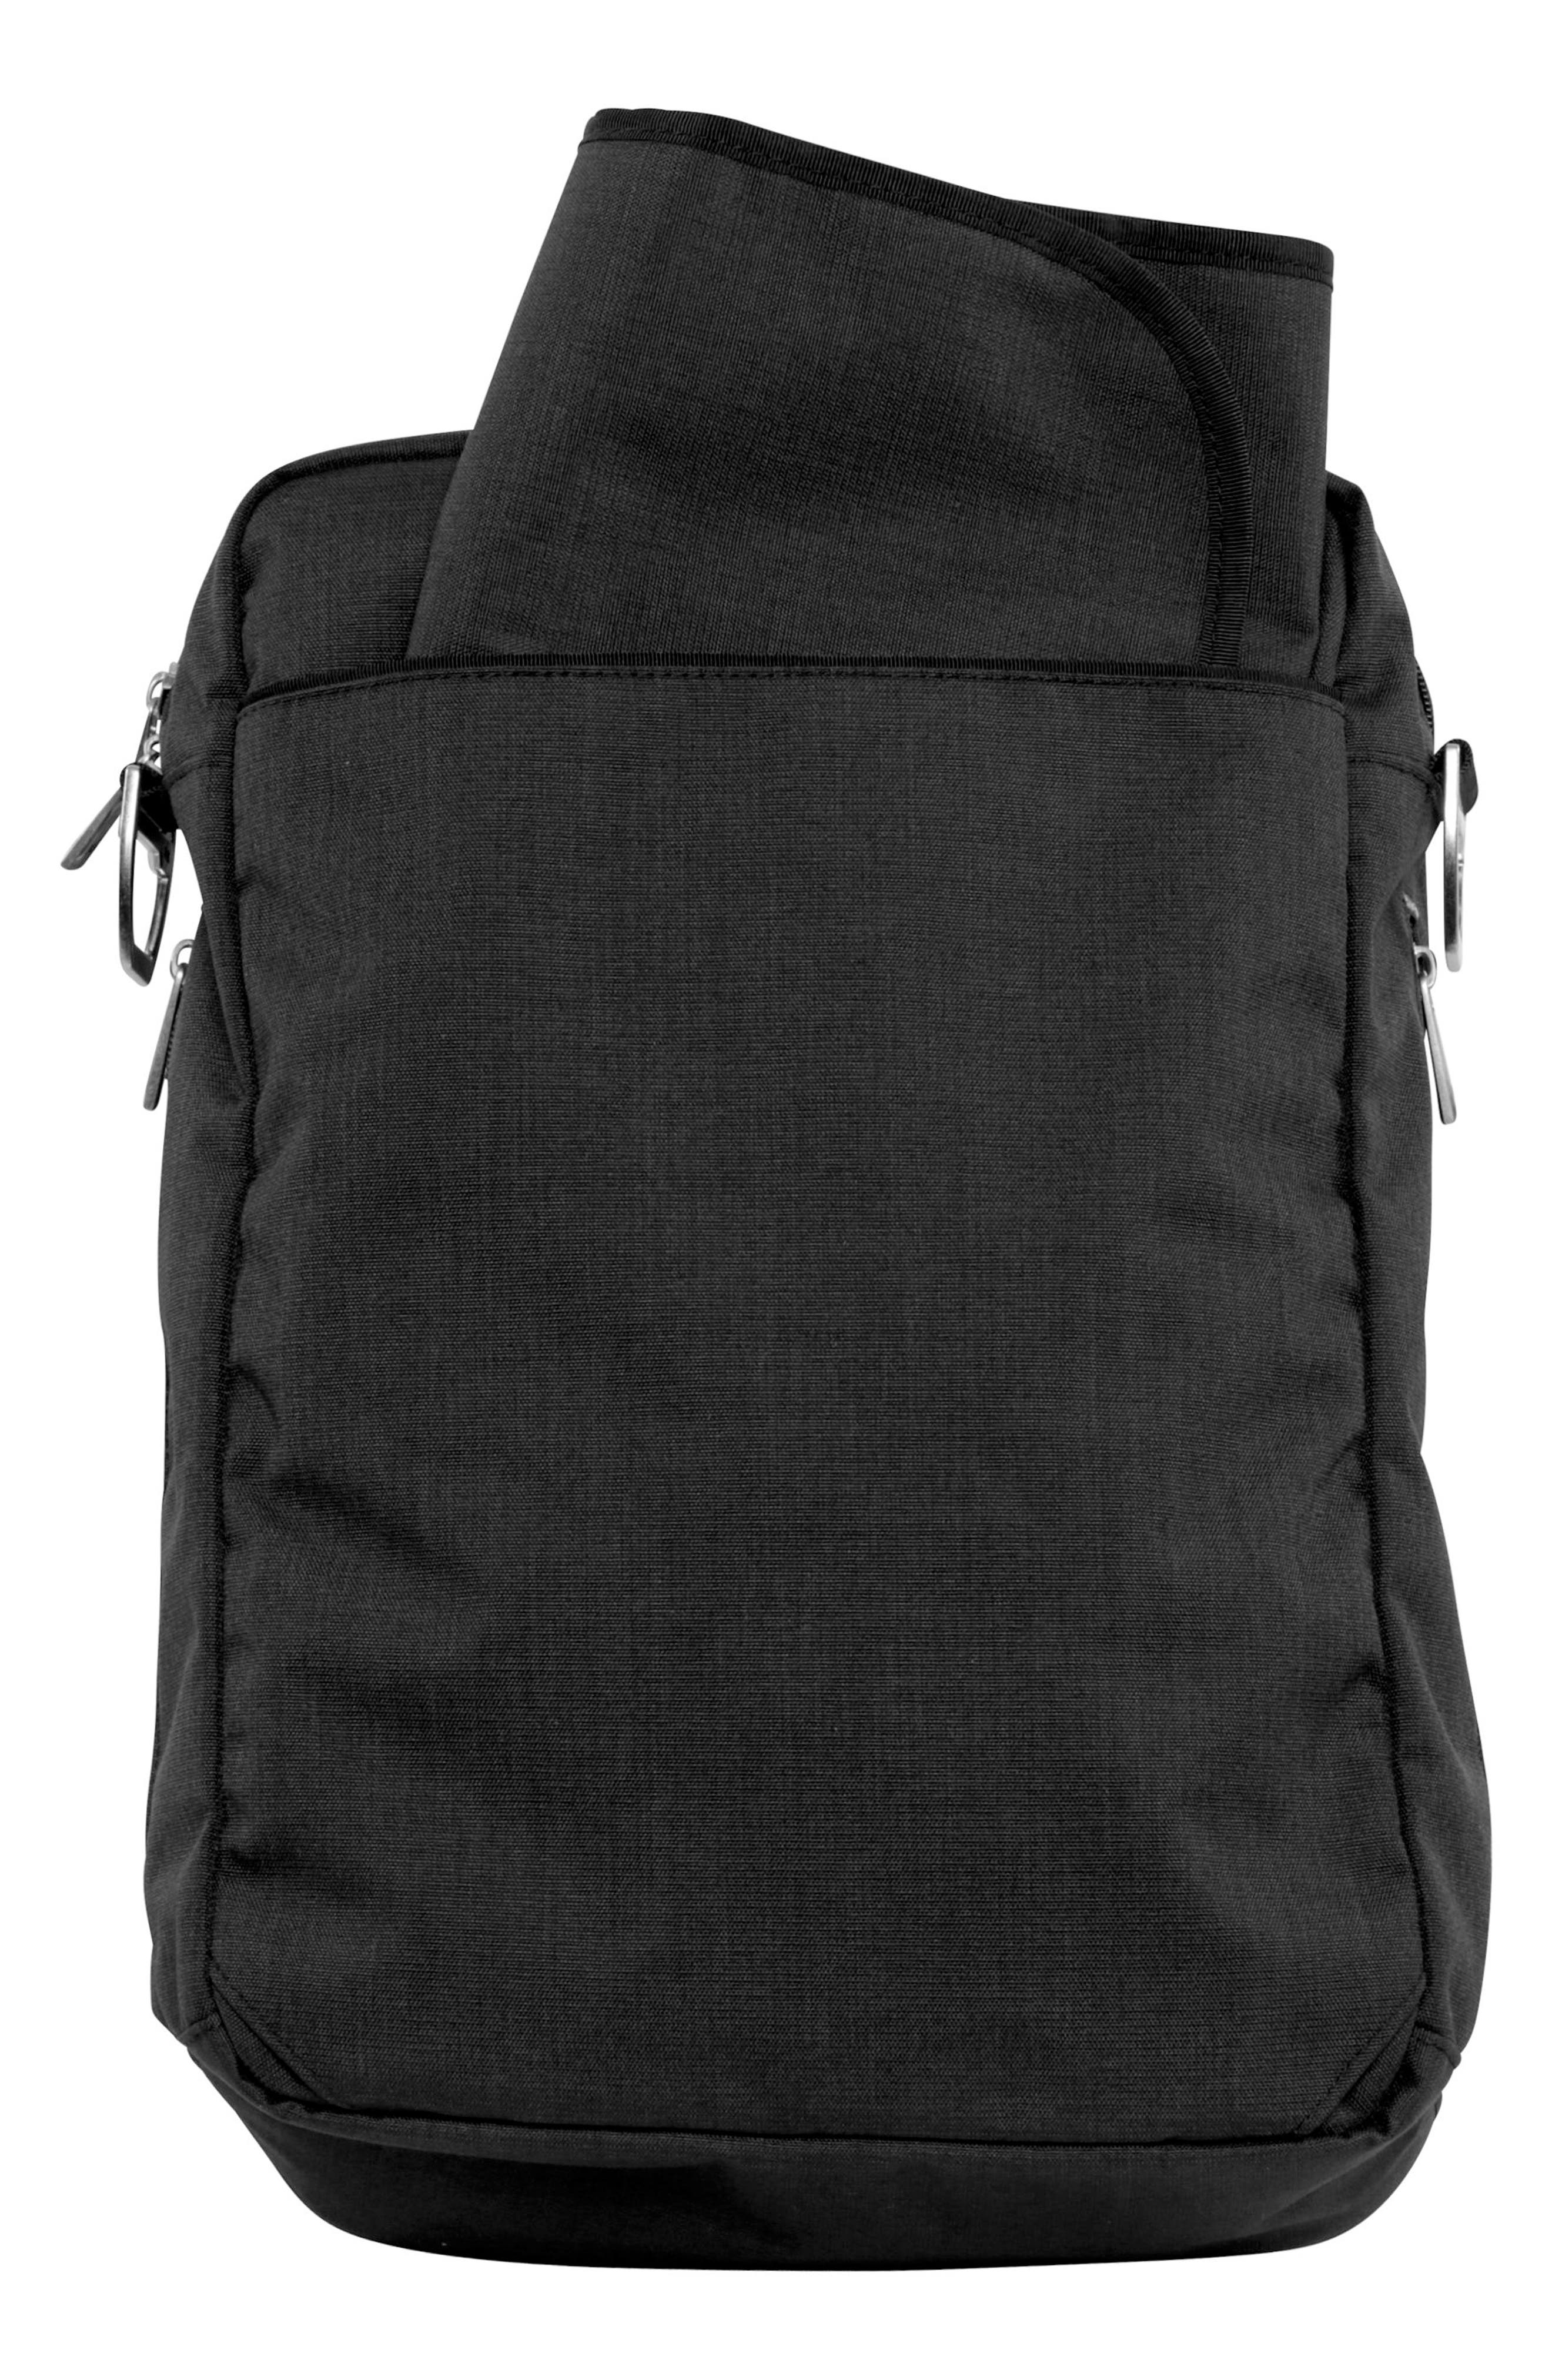 Helix Onyx Collection Messenger Diaper Bag,                             Alternate thumbnail 2, color,                             009